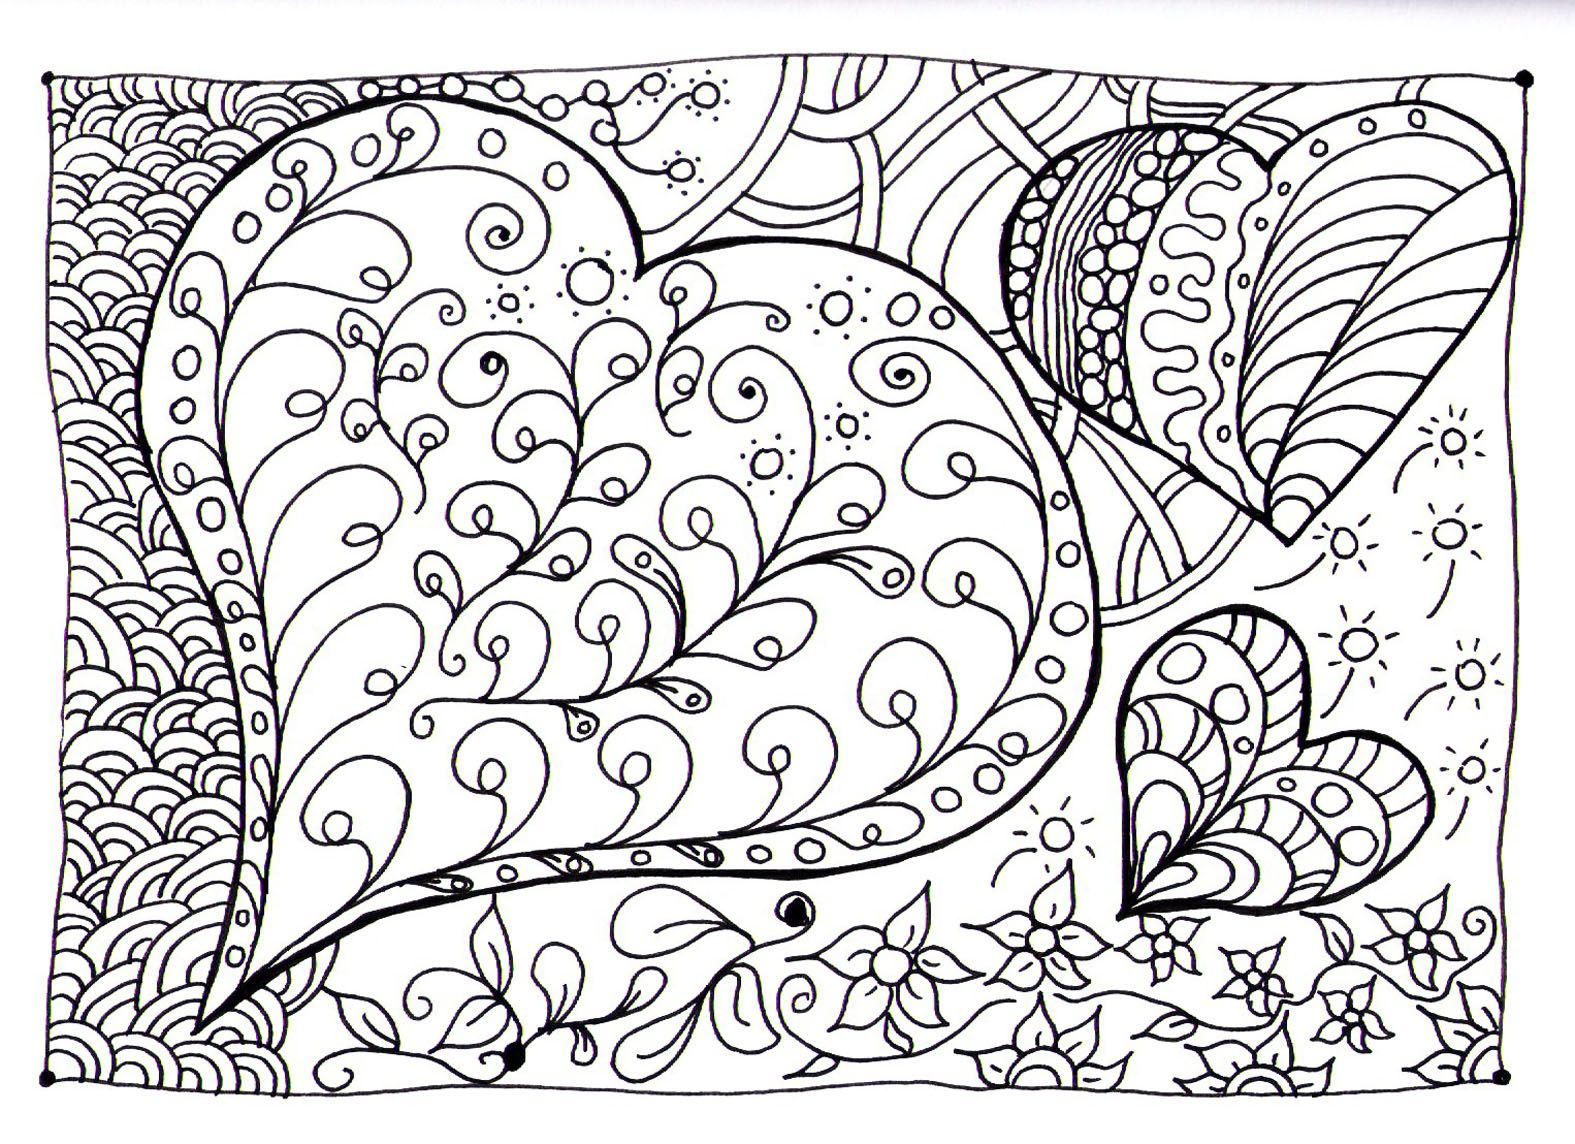 Zen doodle colour - Free Coloring Page Coloring Heart Zen Magnificient Coloring Page Based On Drawings Of Hearts And Other Zen Shapes